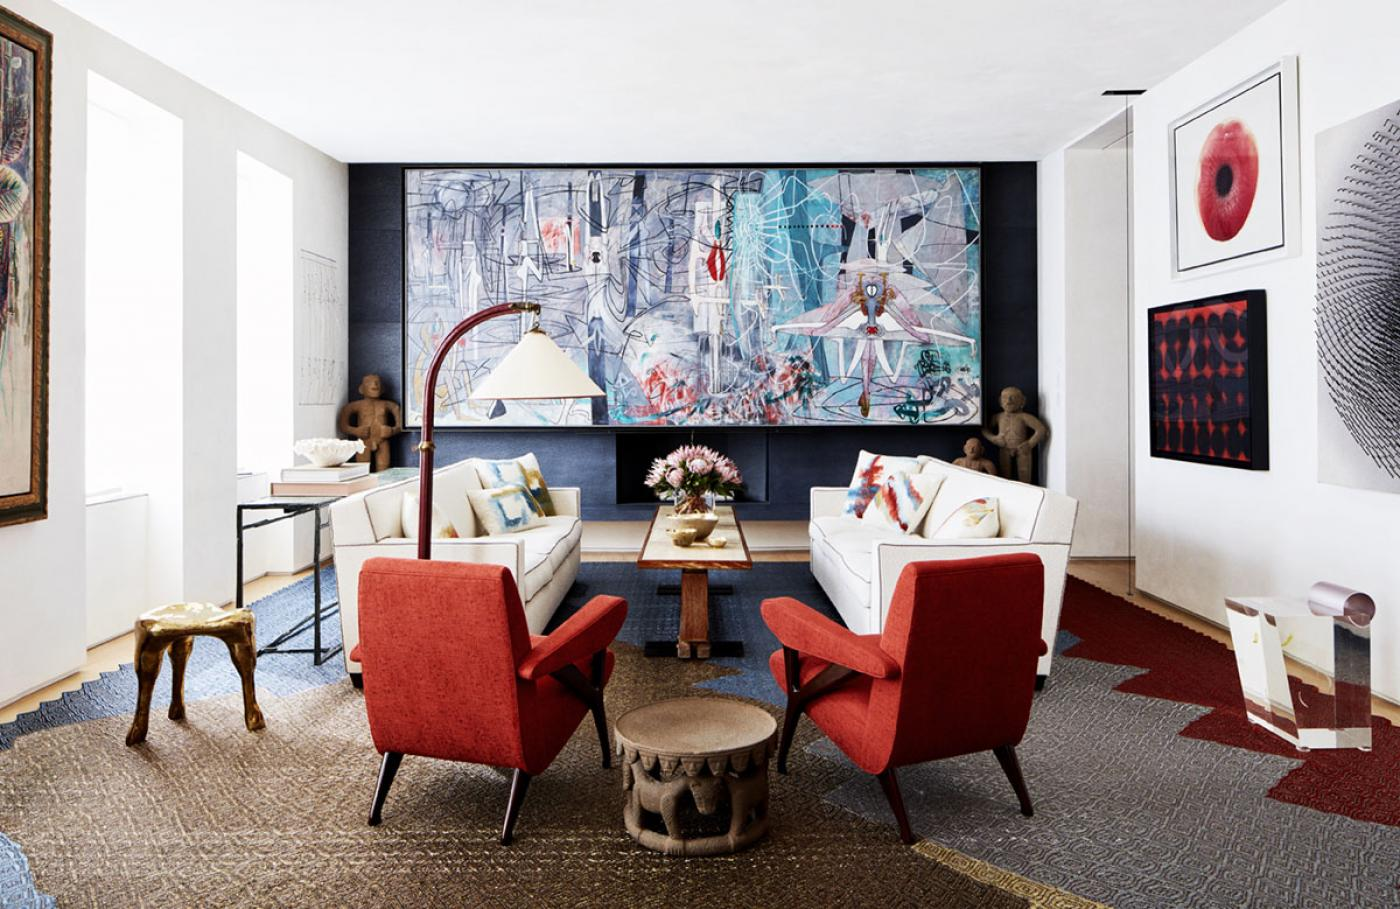 Park Avenue Triplex by Amy Lau. Photo © Thomas Loof